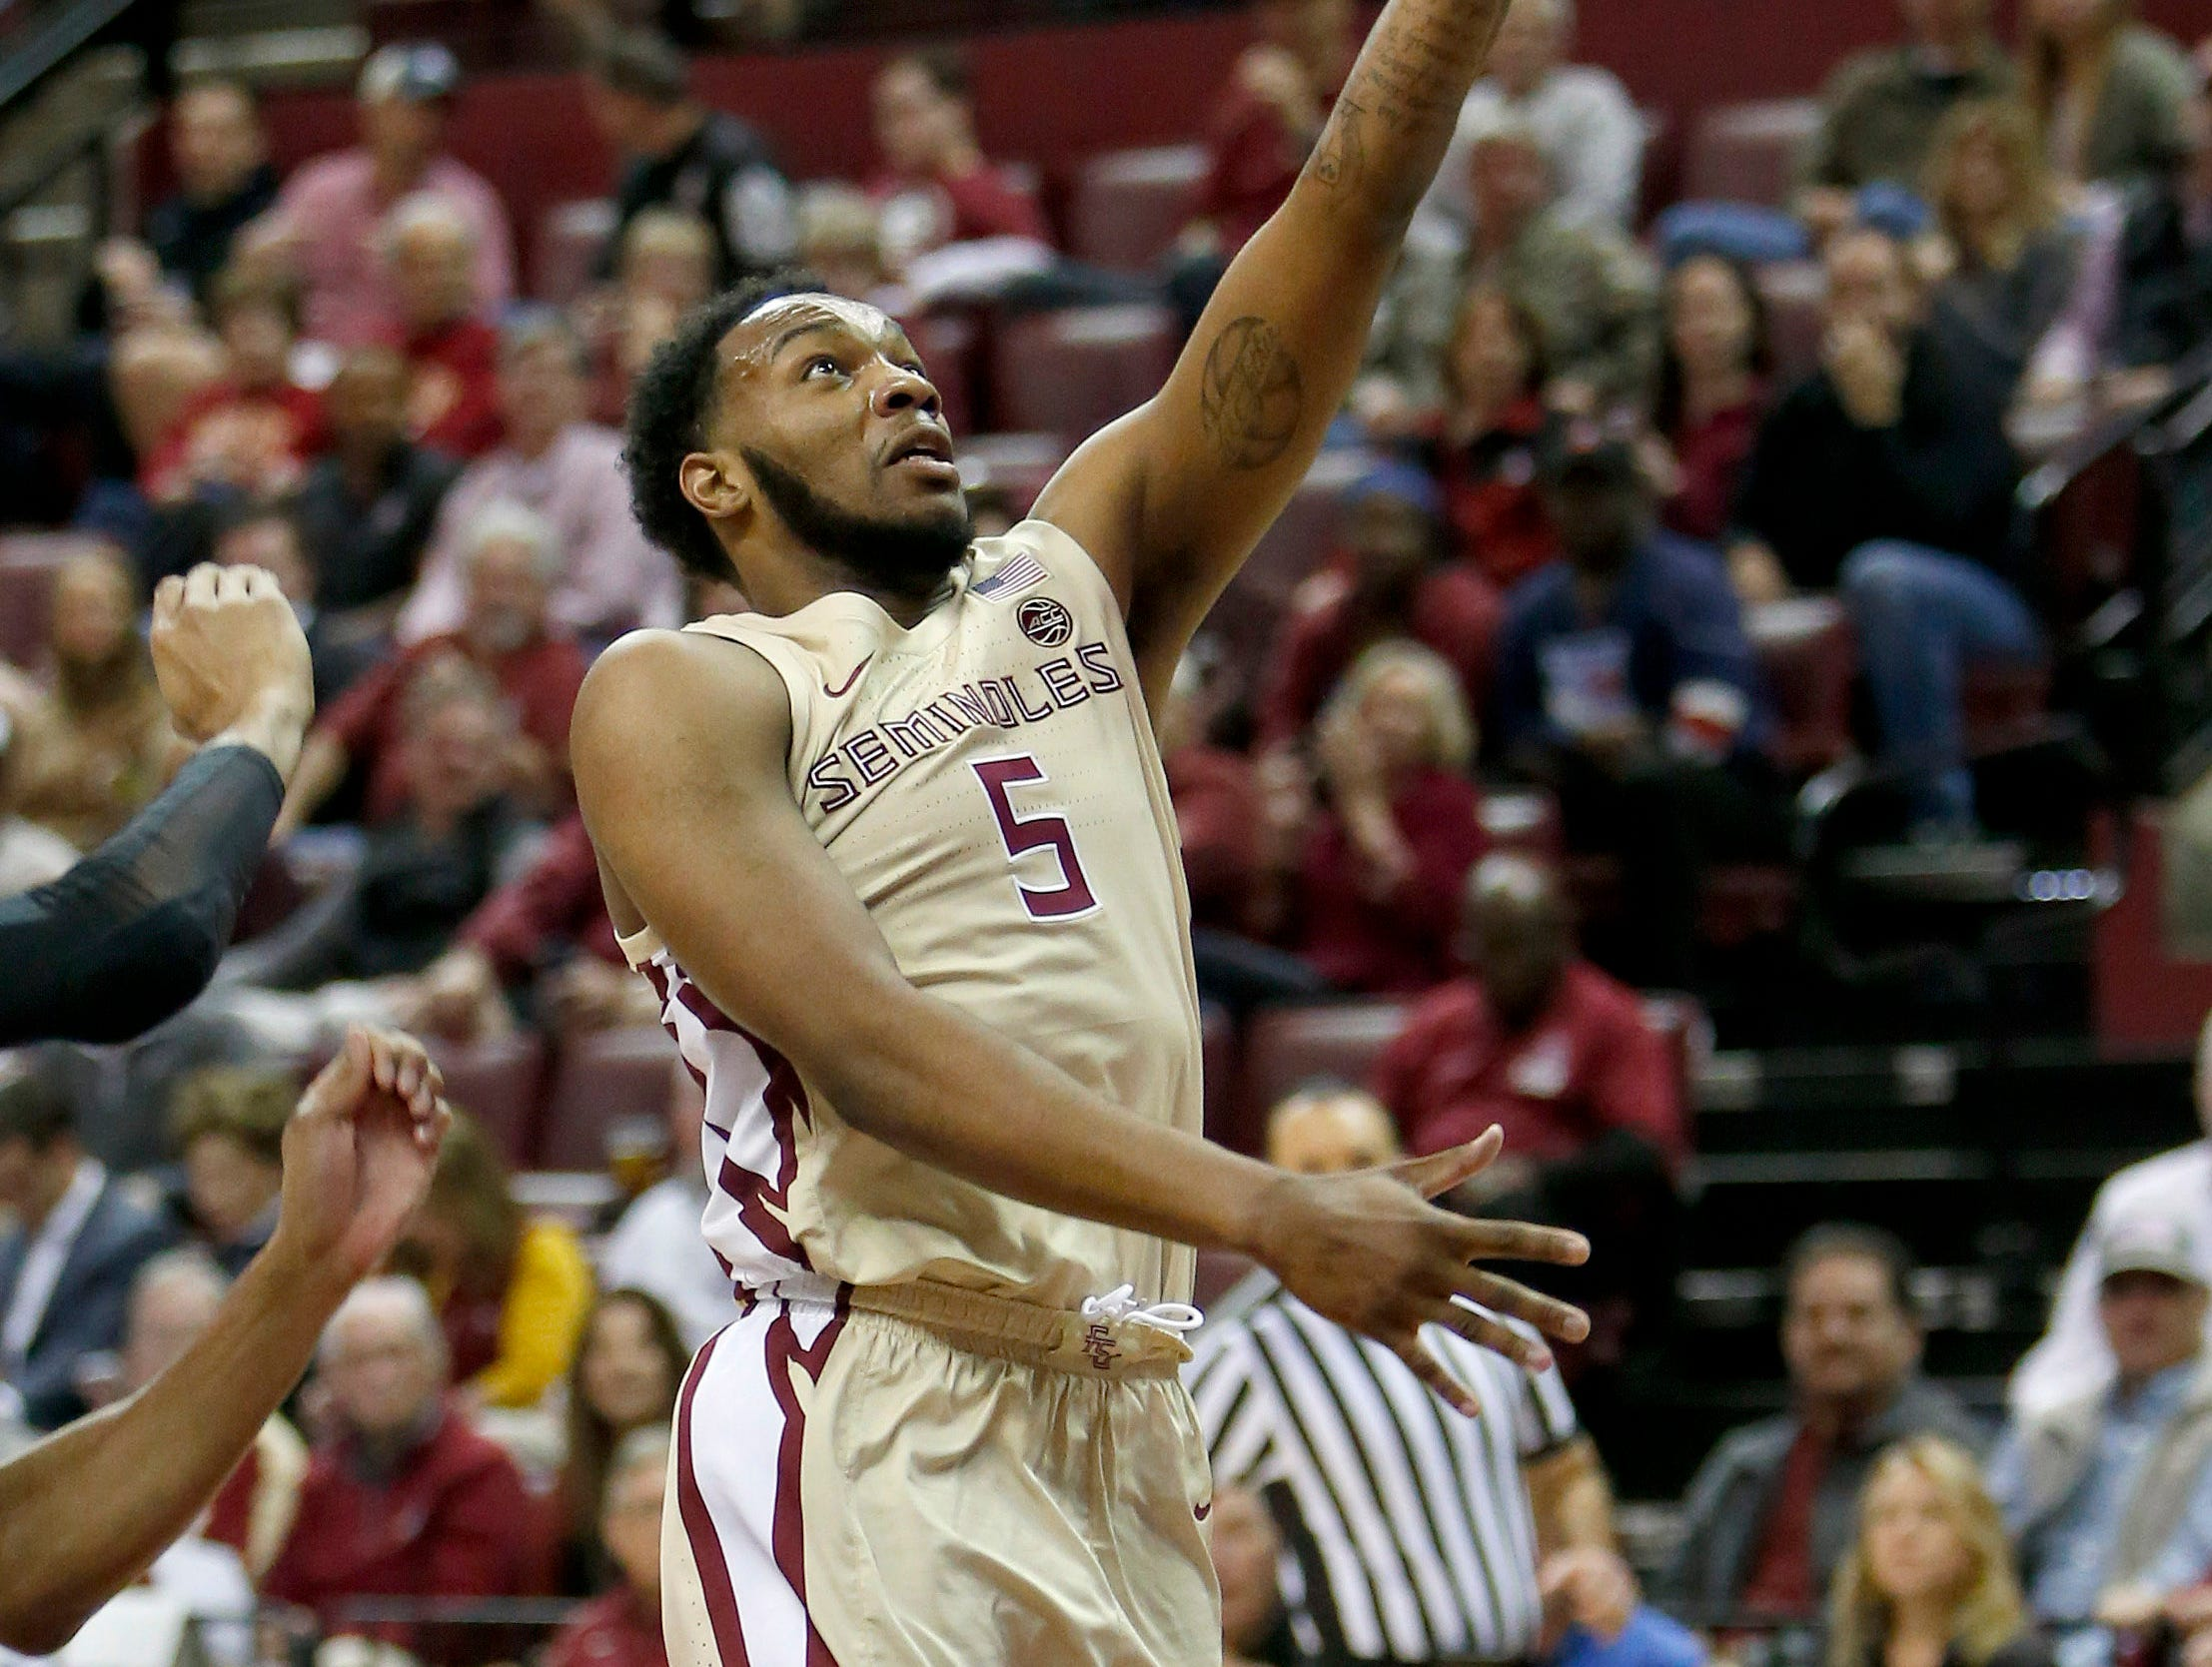 Feb 13, 2019; Tallahassee, FL, USA; Florida State Seminoles guard PJ Savoy (5) shoots the ball against the Wake Forest Demon Deacons during the first half at Donald L. Tucker Center. Mandatory Credit: Glenn Beil-USA TODAY Sports